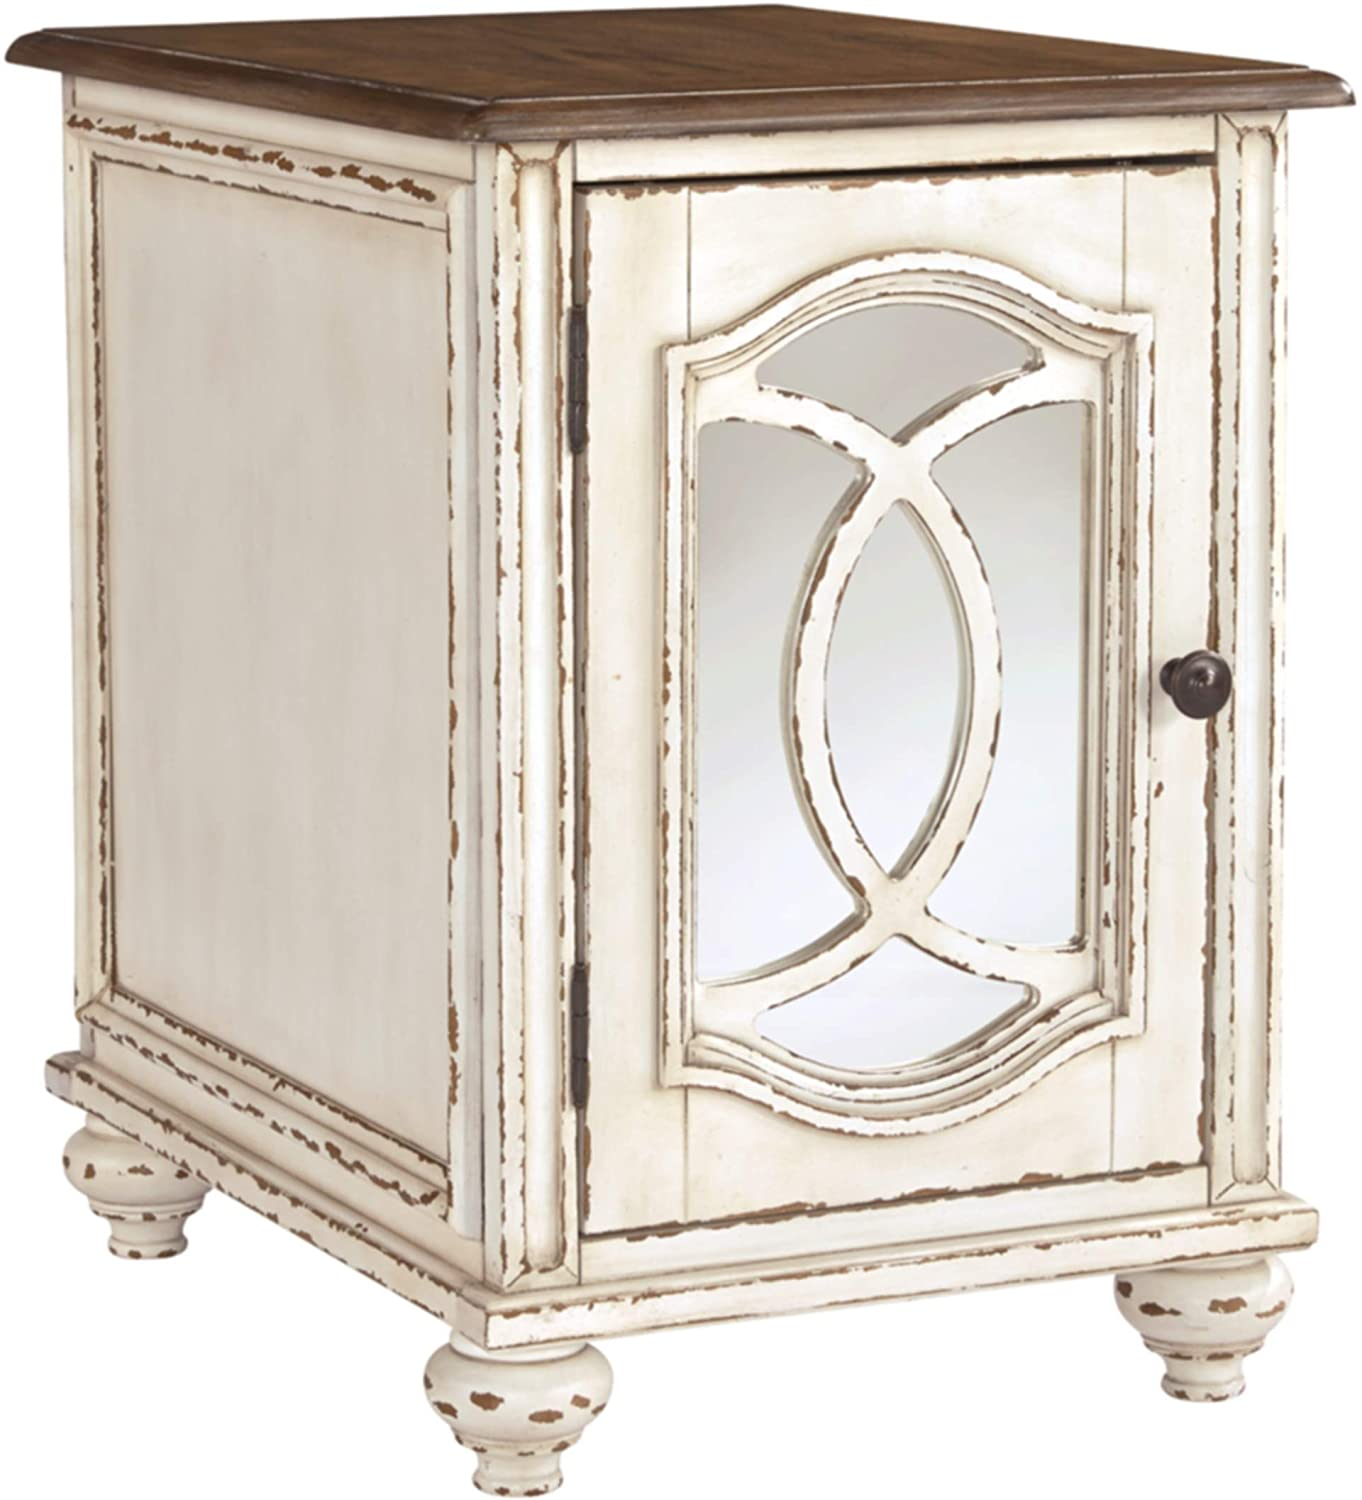 Signature Design by Ashley - Realyn Wooden End Table w/ Storage, White/Brown